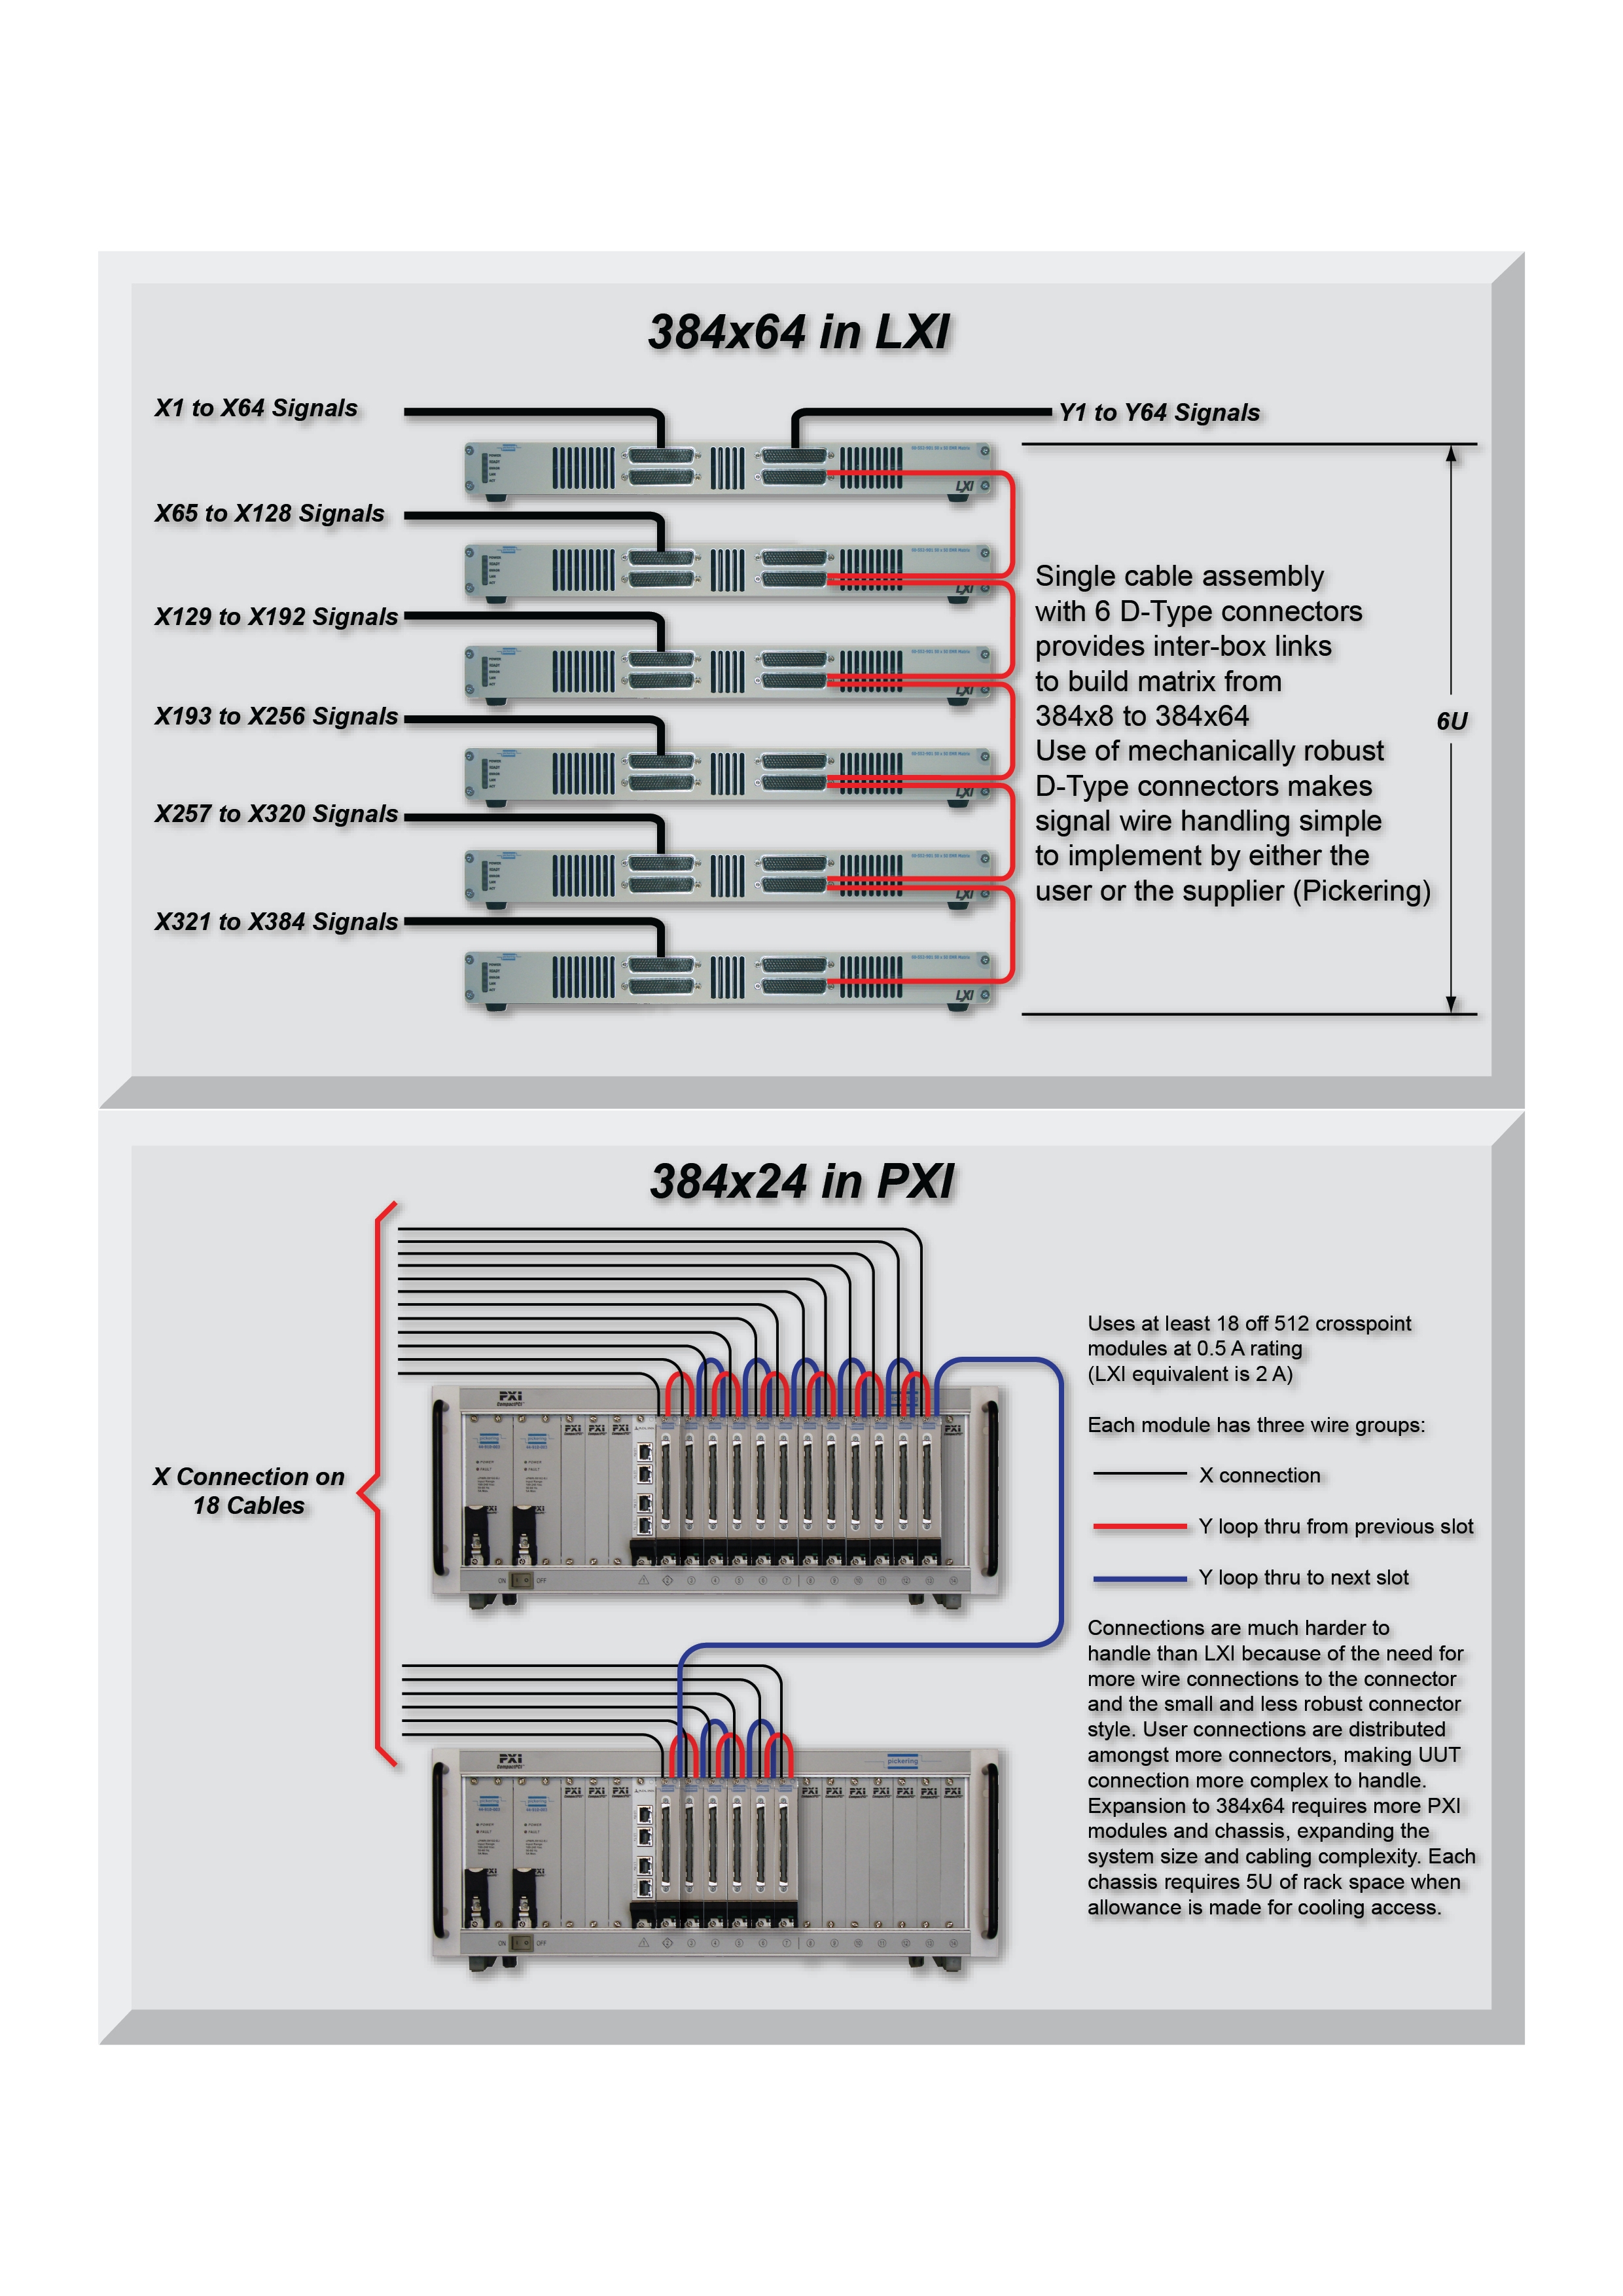 Comparison between PXI and LXI